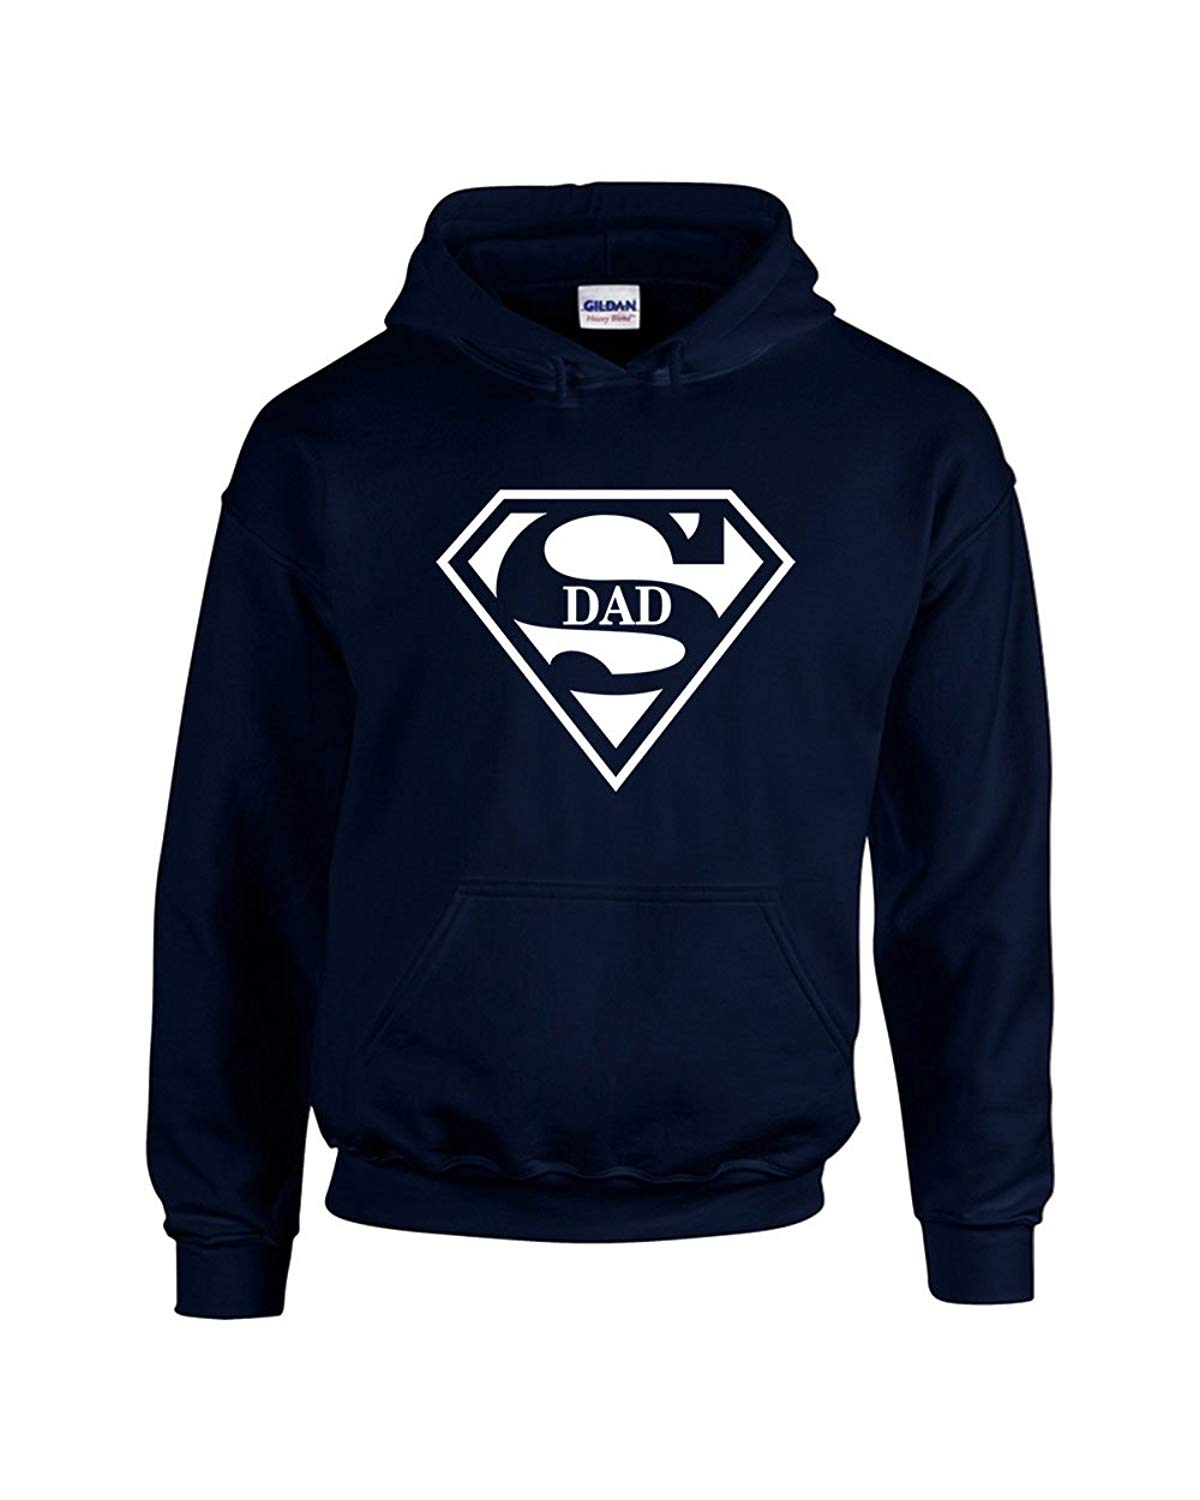 34cdfef3a9e2 Get Quotations · H D Shirt Shoppers Hoodies For Men Super Dad Superman  Designed Pullover Hooded Sweatshirt